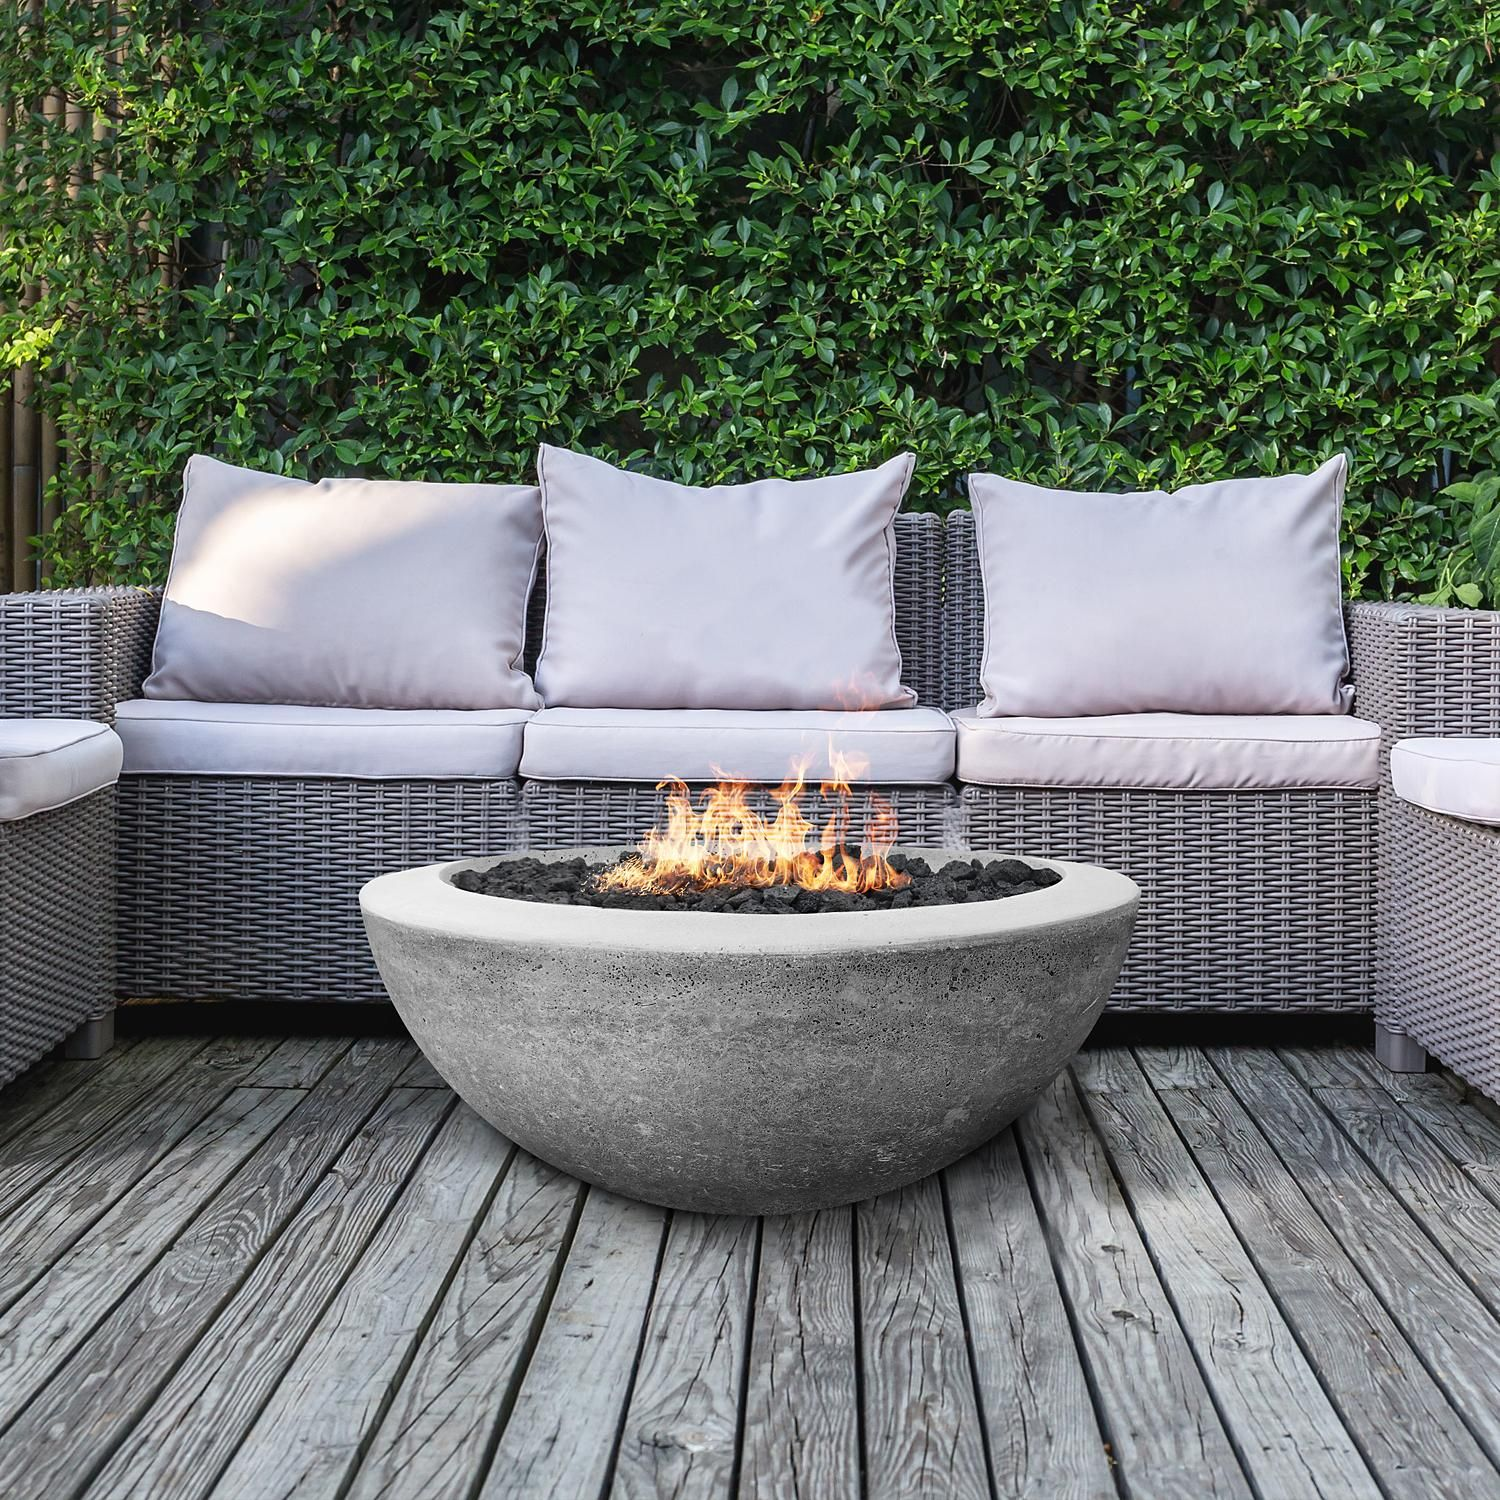 Madrid 30 Fire Bowl Propane Tank Enclosure Sam S Club In 2020 Fire Bowls Fire Pit Outdoor Fire